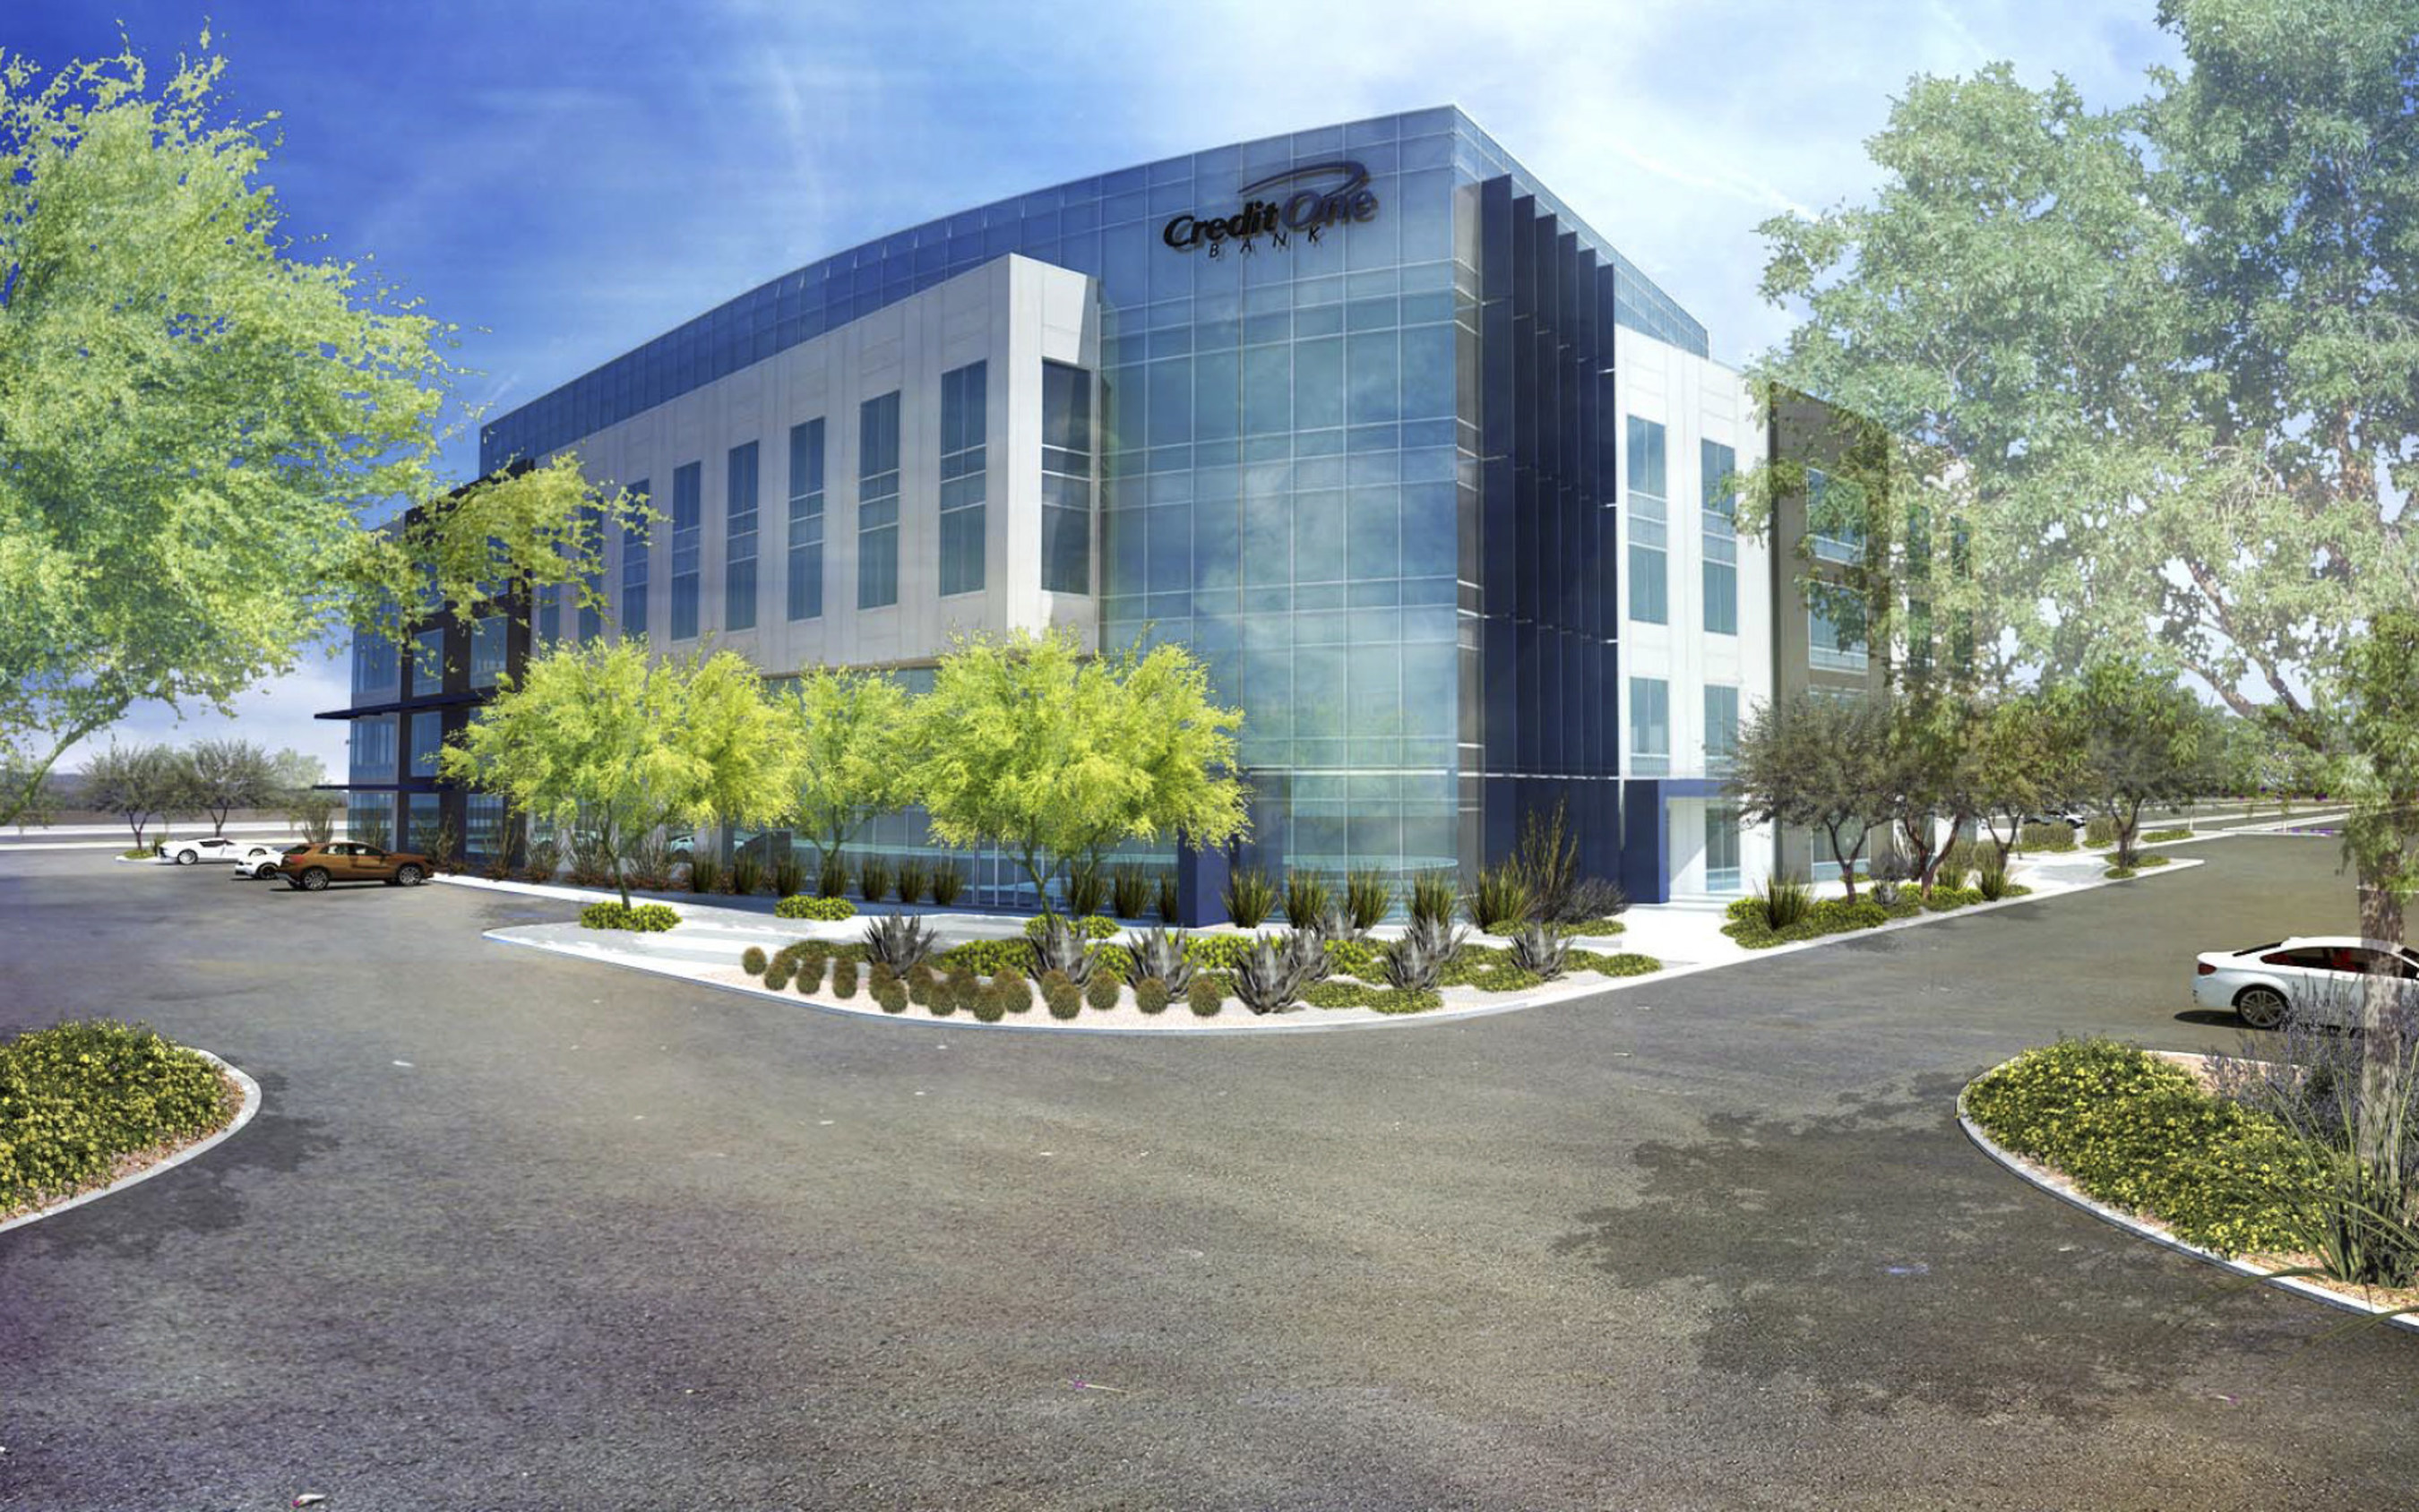 Credit One Bank will break ground on its new headquarters in Las Vegas, creating 500 new jobs in the near future.